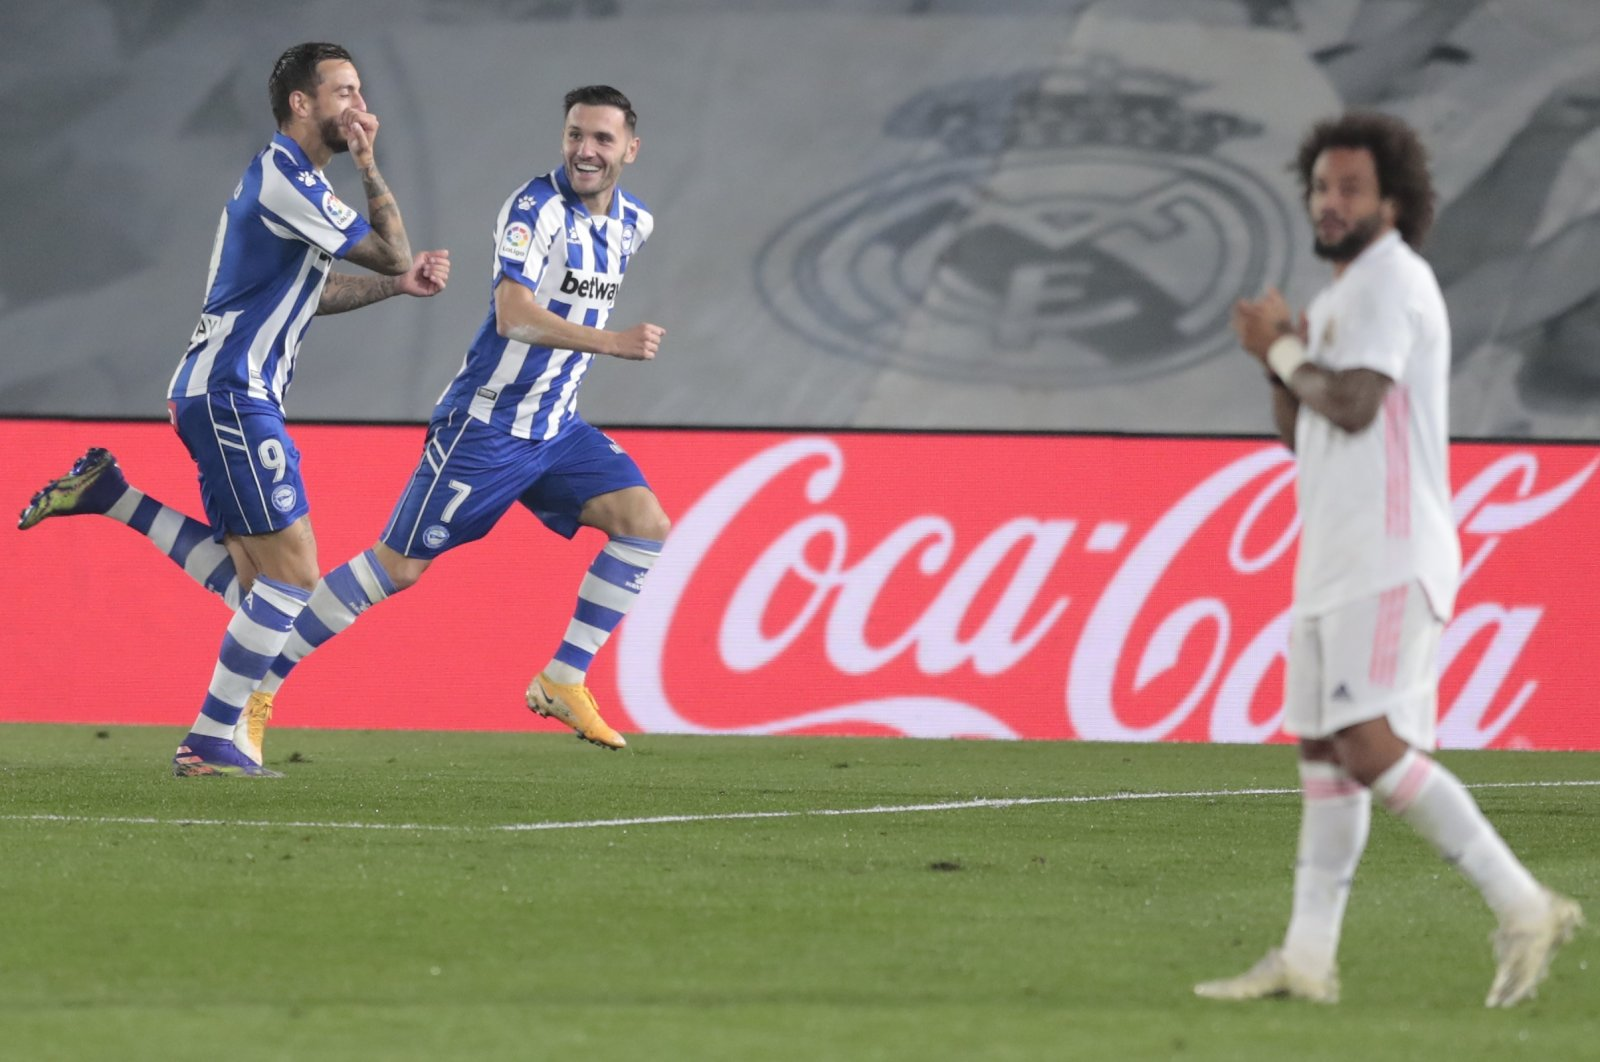 Real Madrid's Marcelo (R) looks dejected as Alaves players celebrate a goal during a La Liga match in Madrid, Spain, Nov. 28, 2020. (AP Photo)